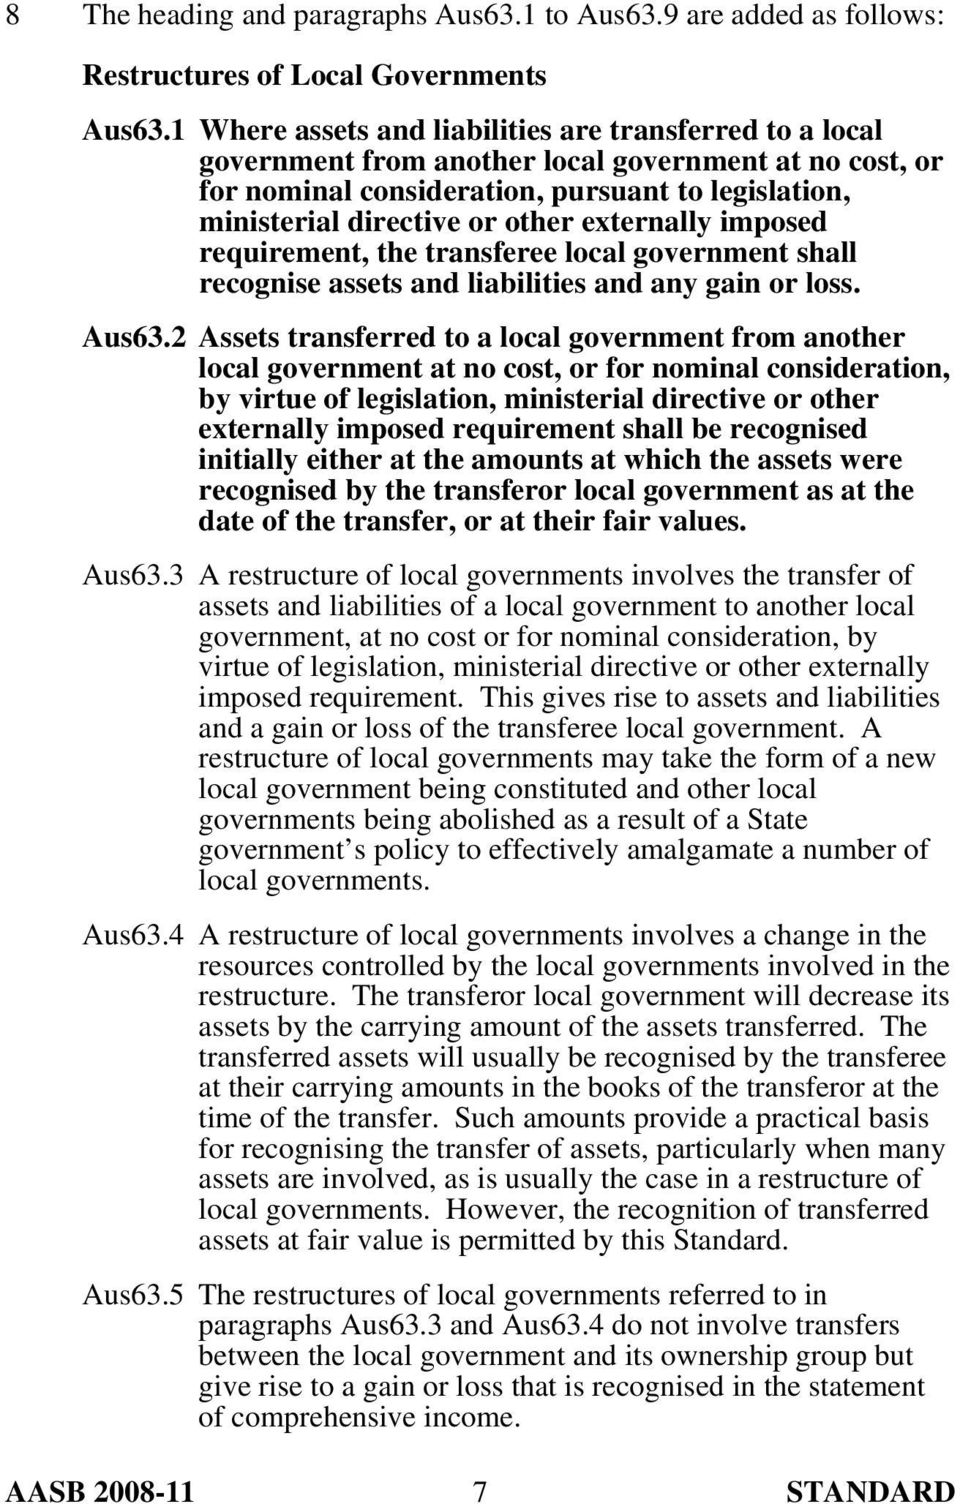 externally imposed requirement, the transferee local government shall recognise assets and liabilities and any gain or loss. Aus63.